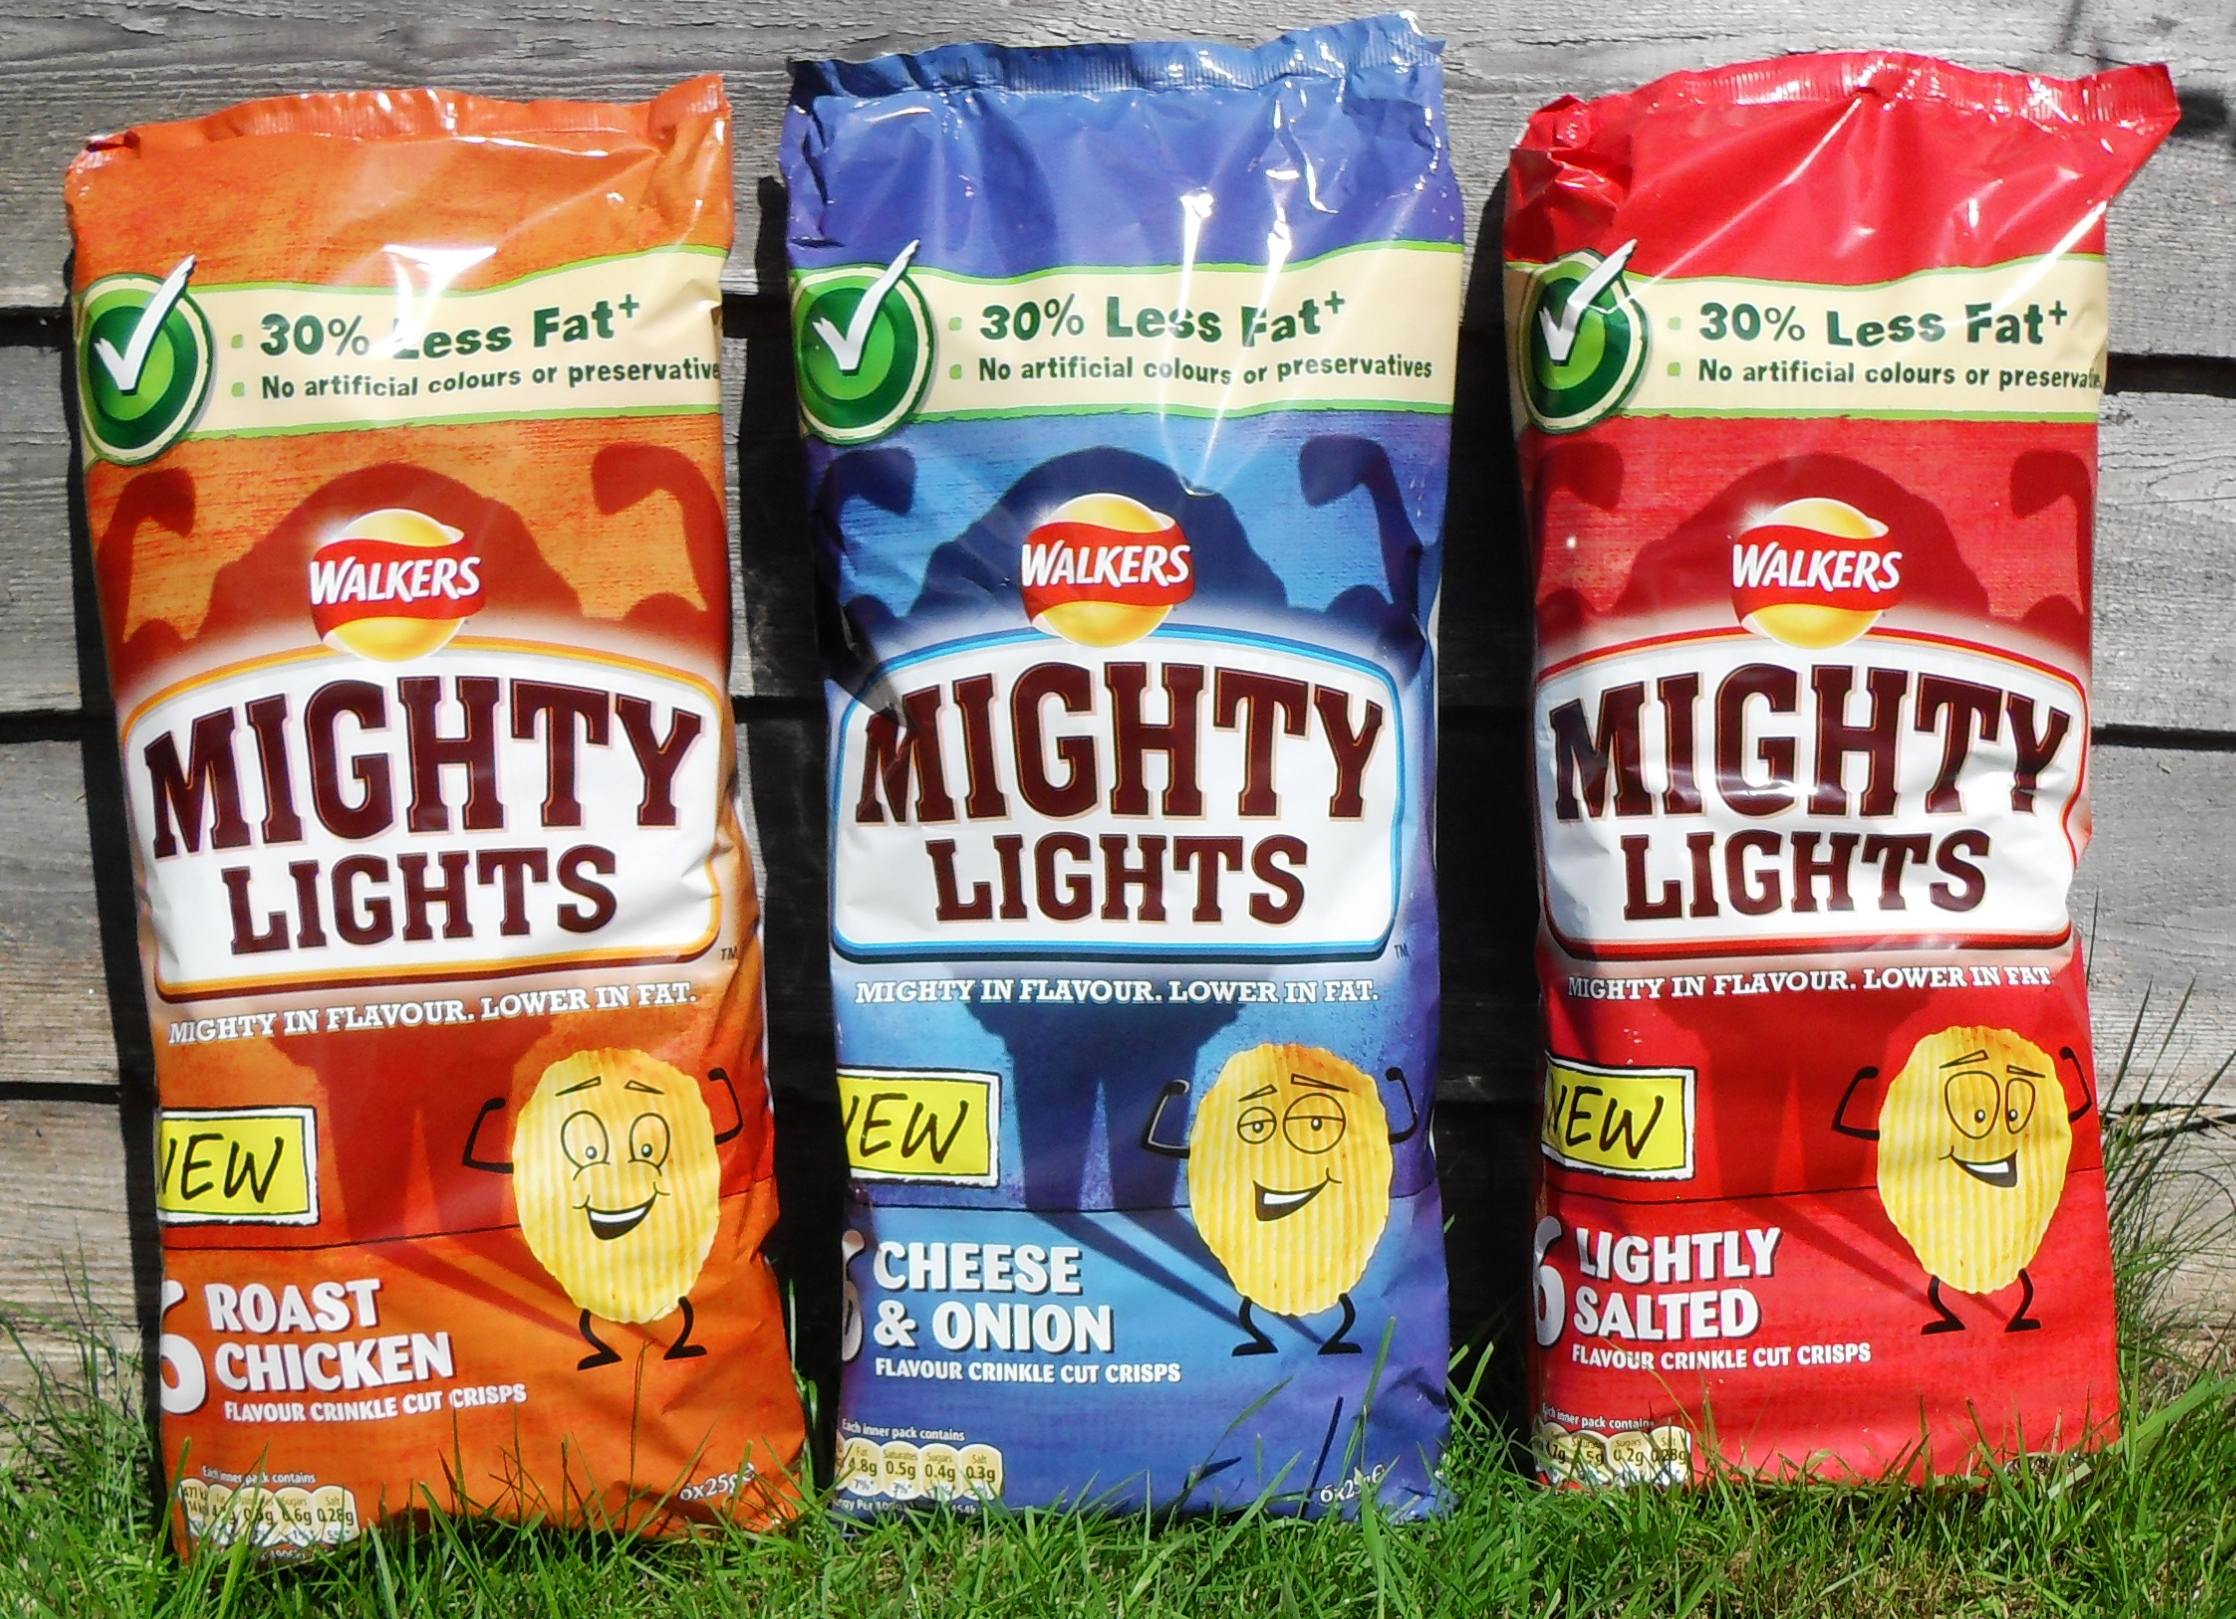 Multi-packs, crisps, lower fat